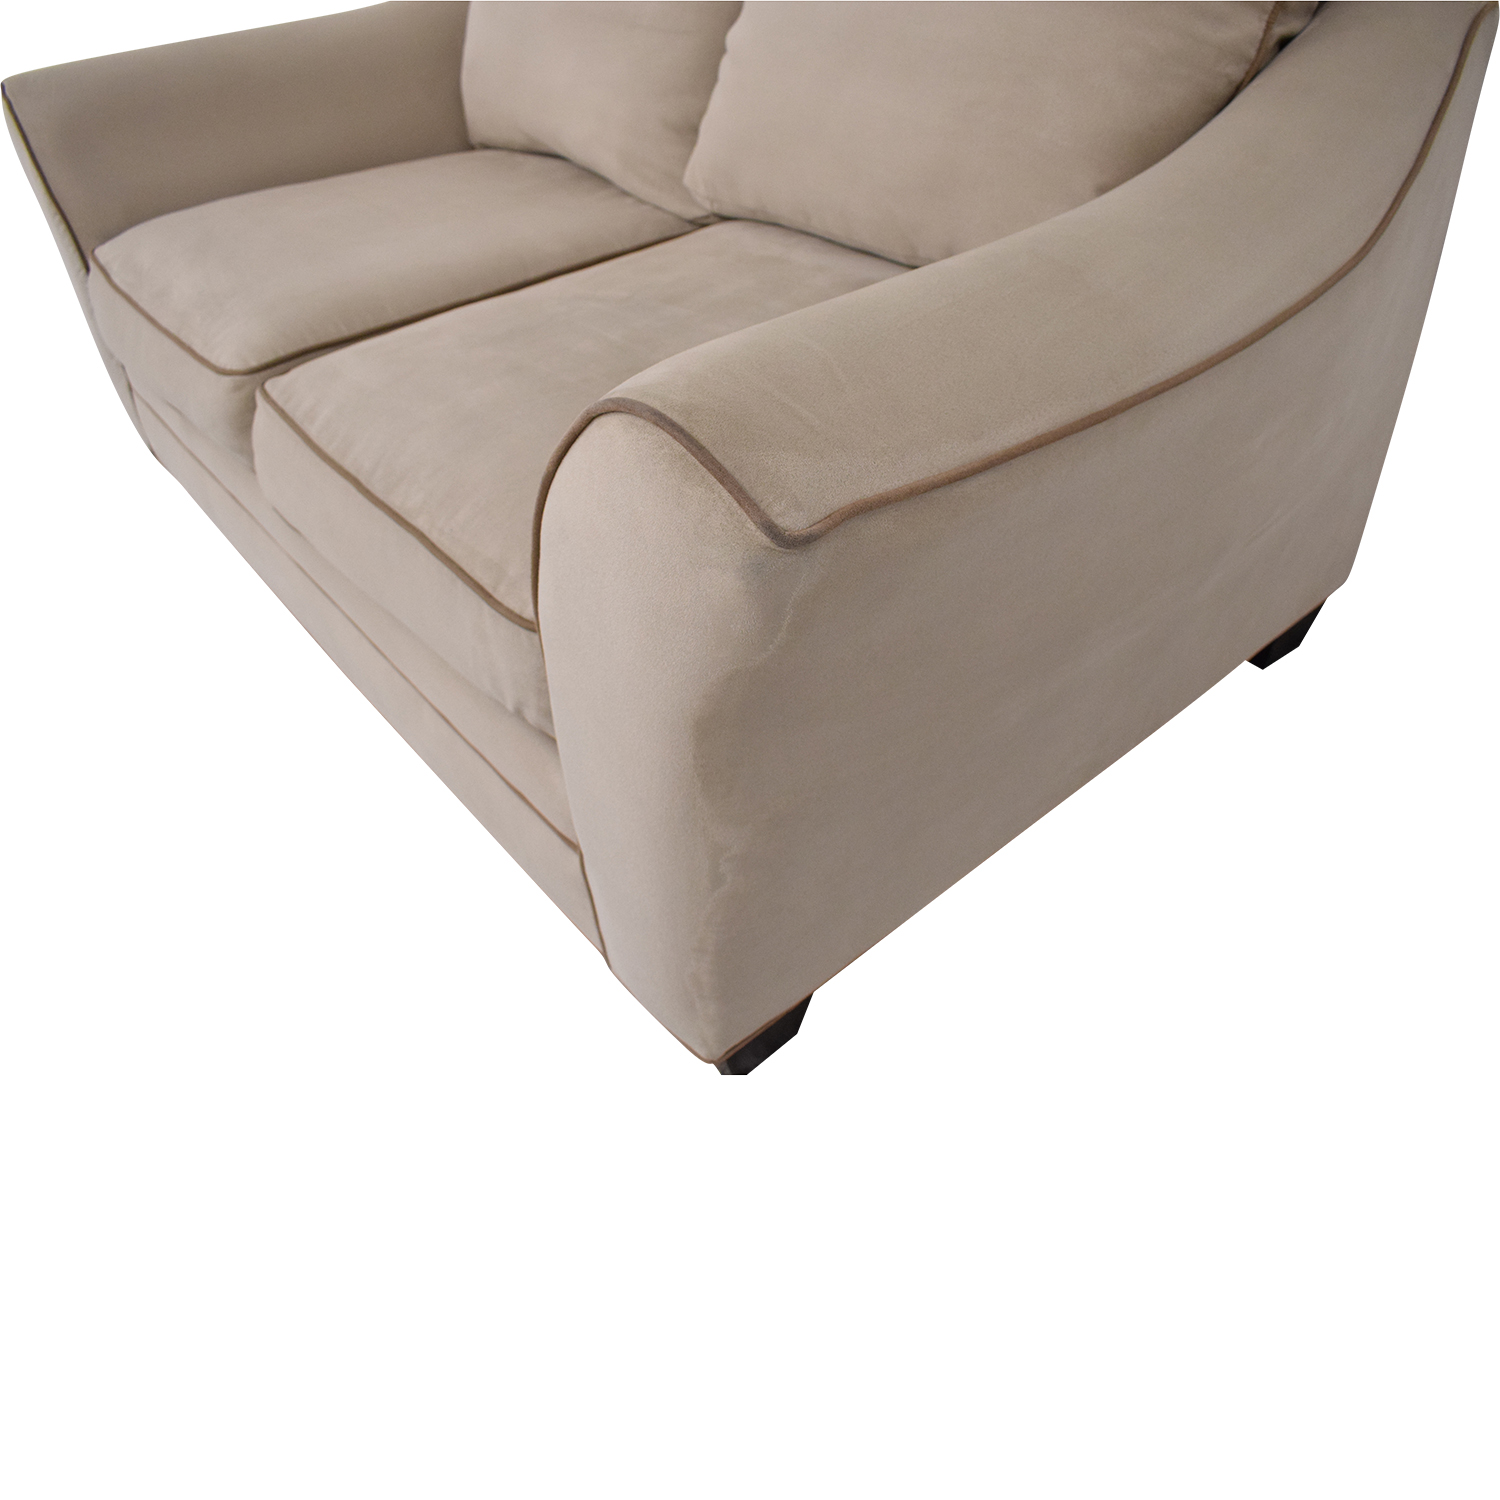 Raymour & Flanigan Raymour & Flanigan Foresthill Loveseat price